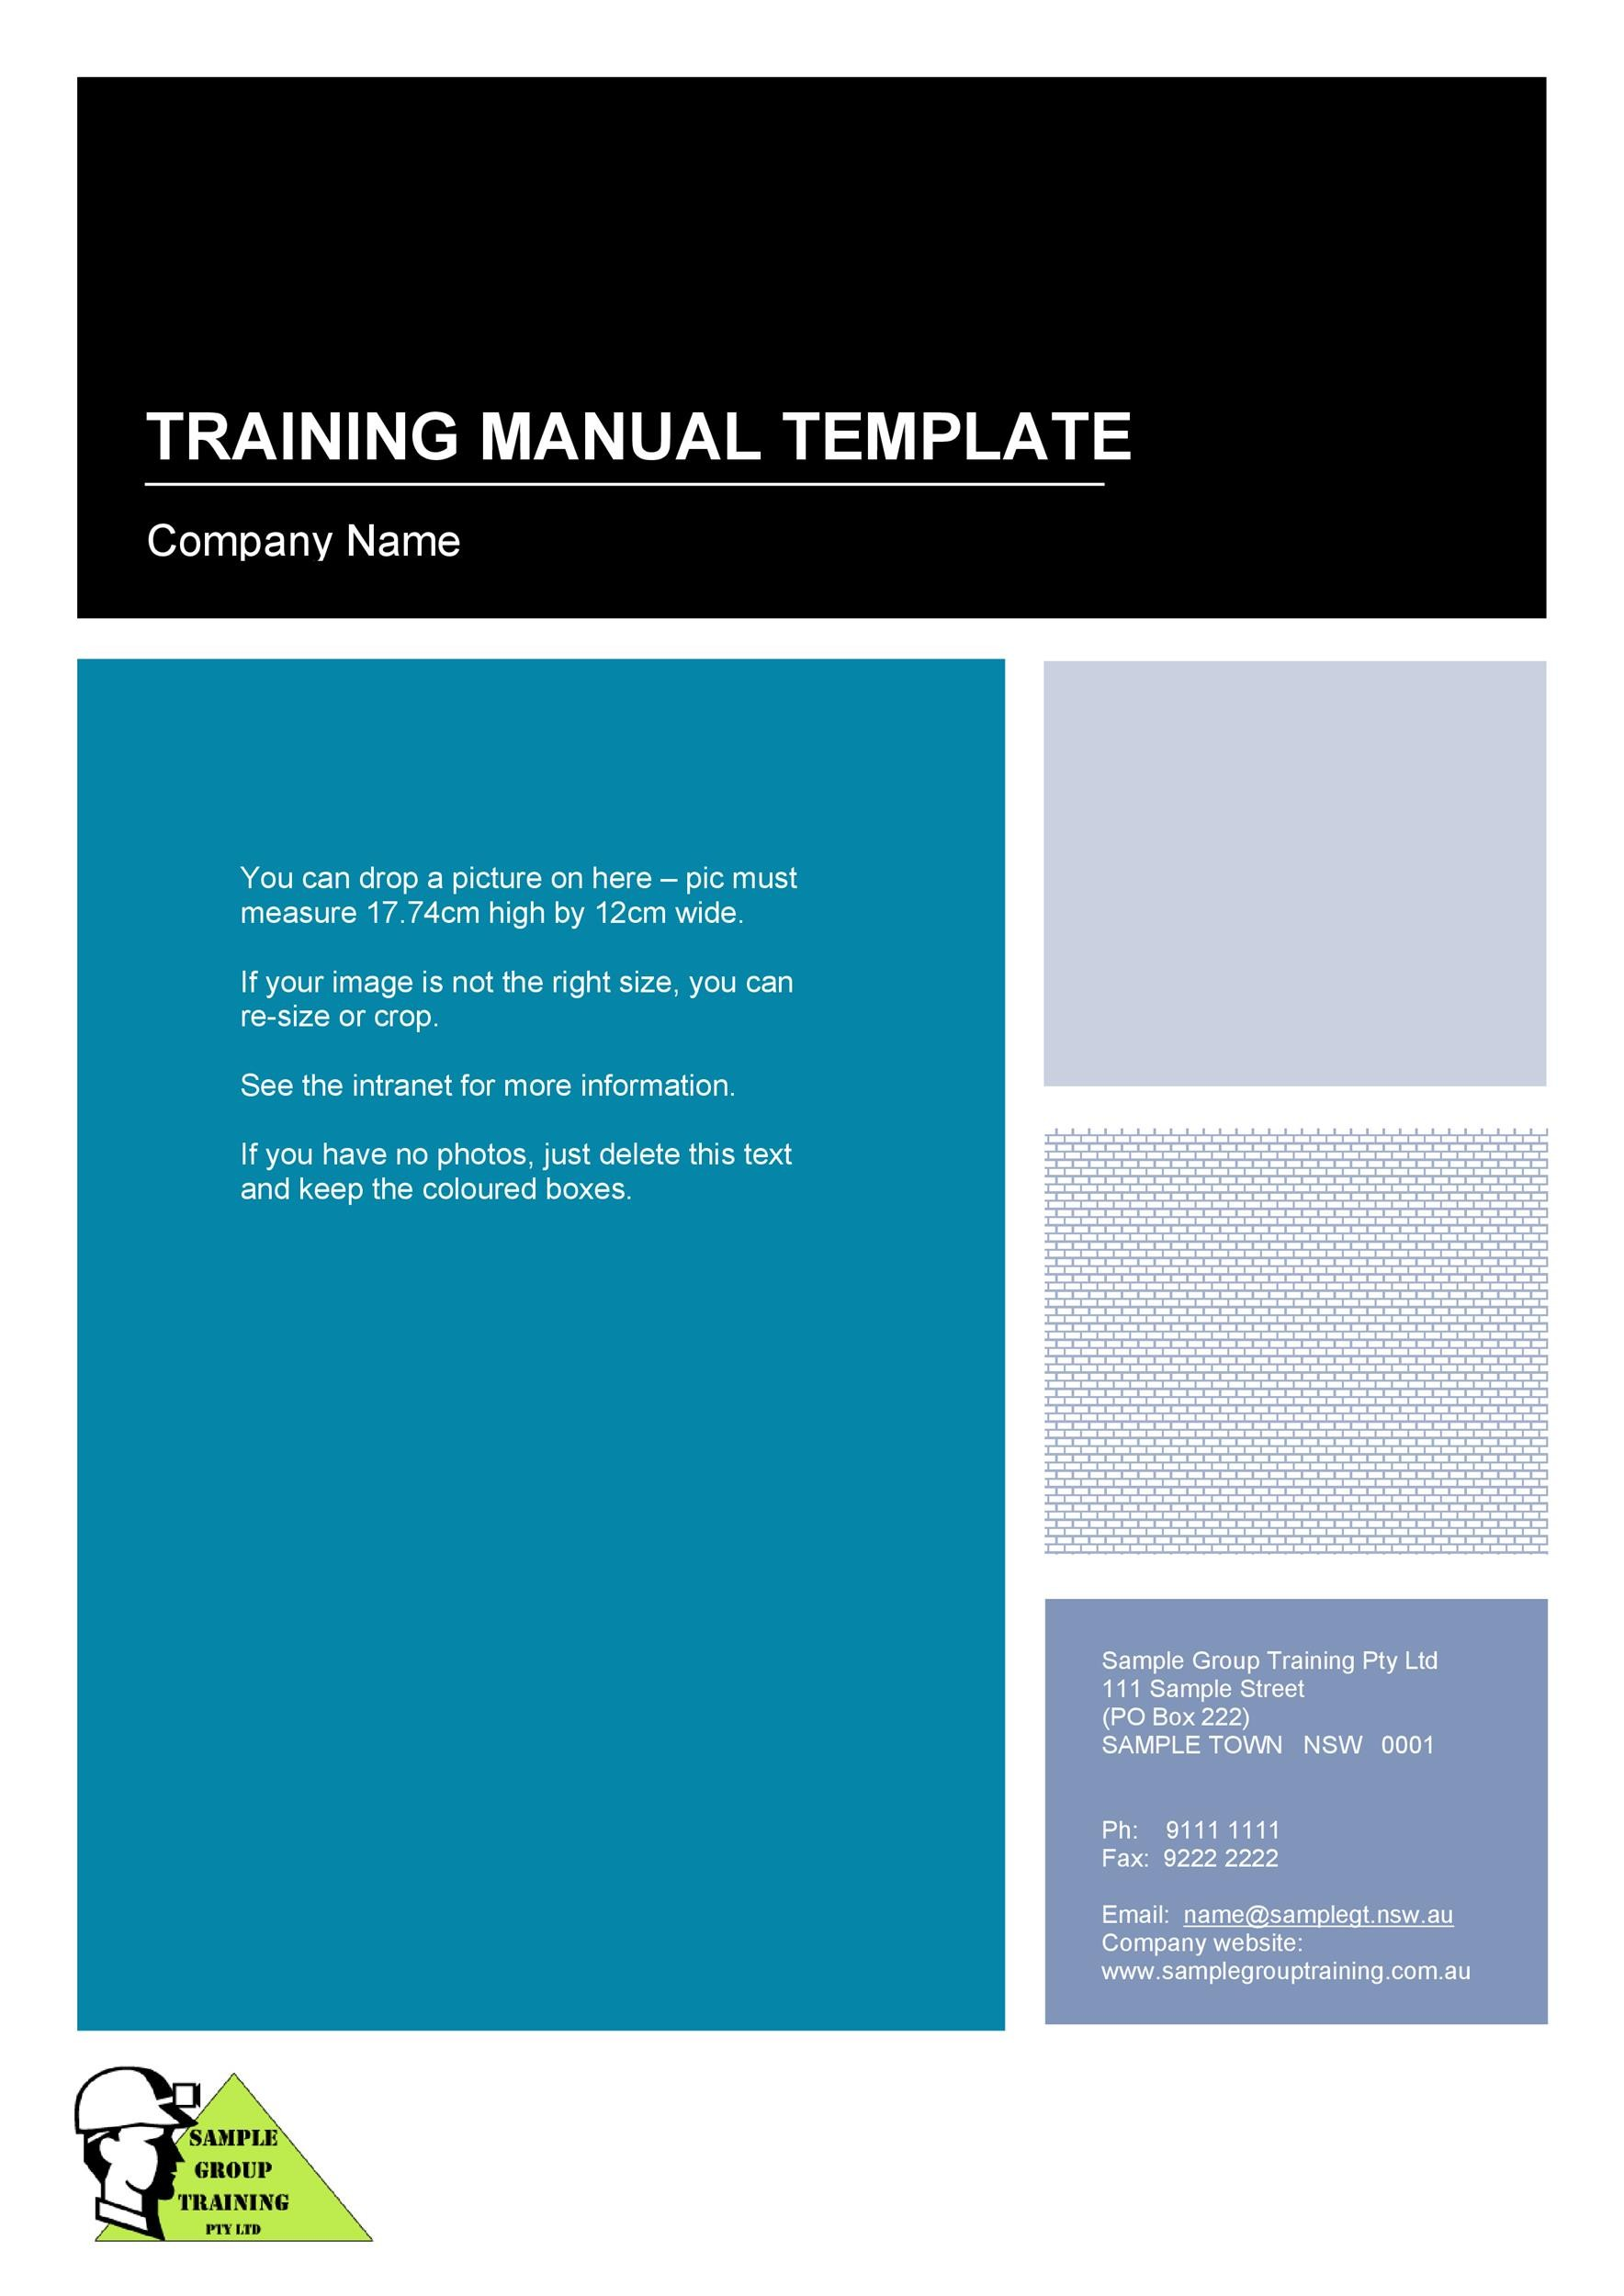 Printable Training Manual Template 01  Free Training Manual Templates